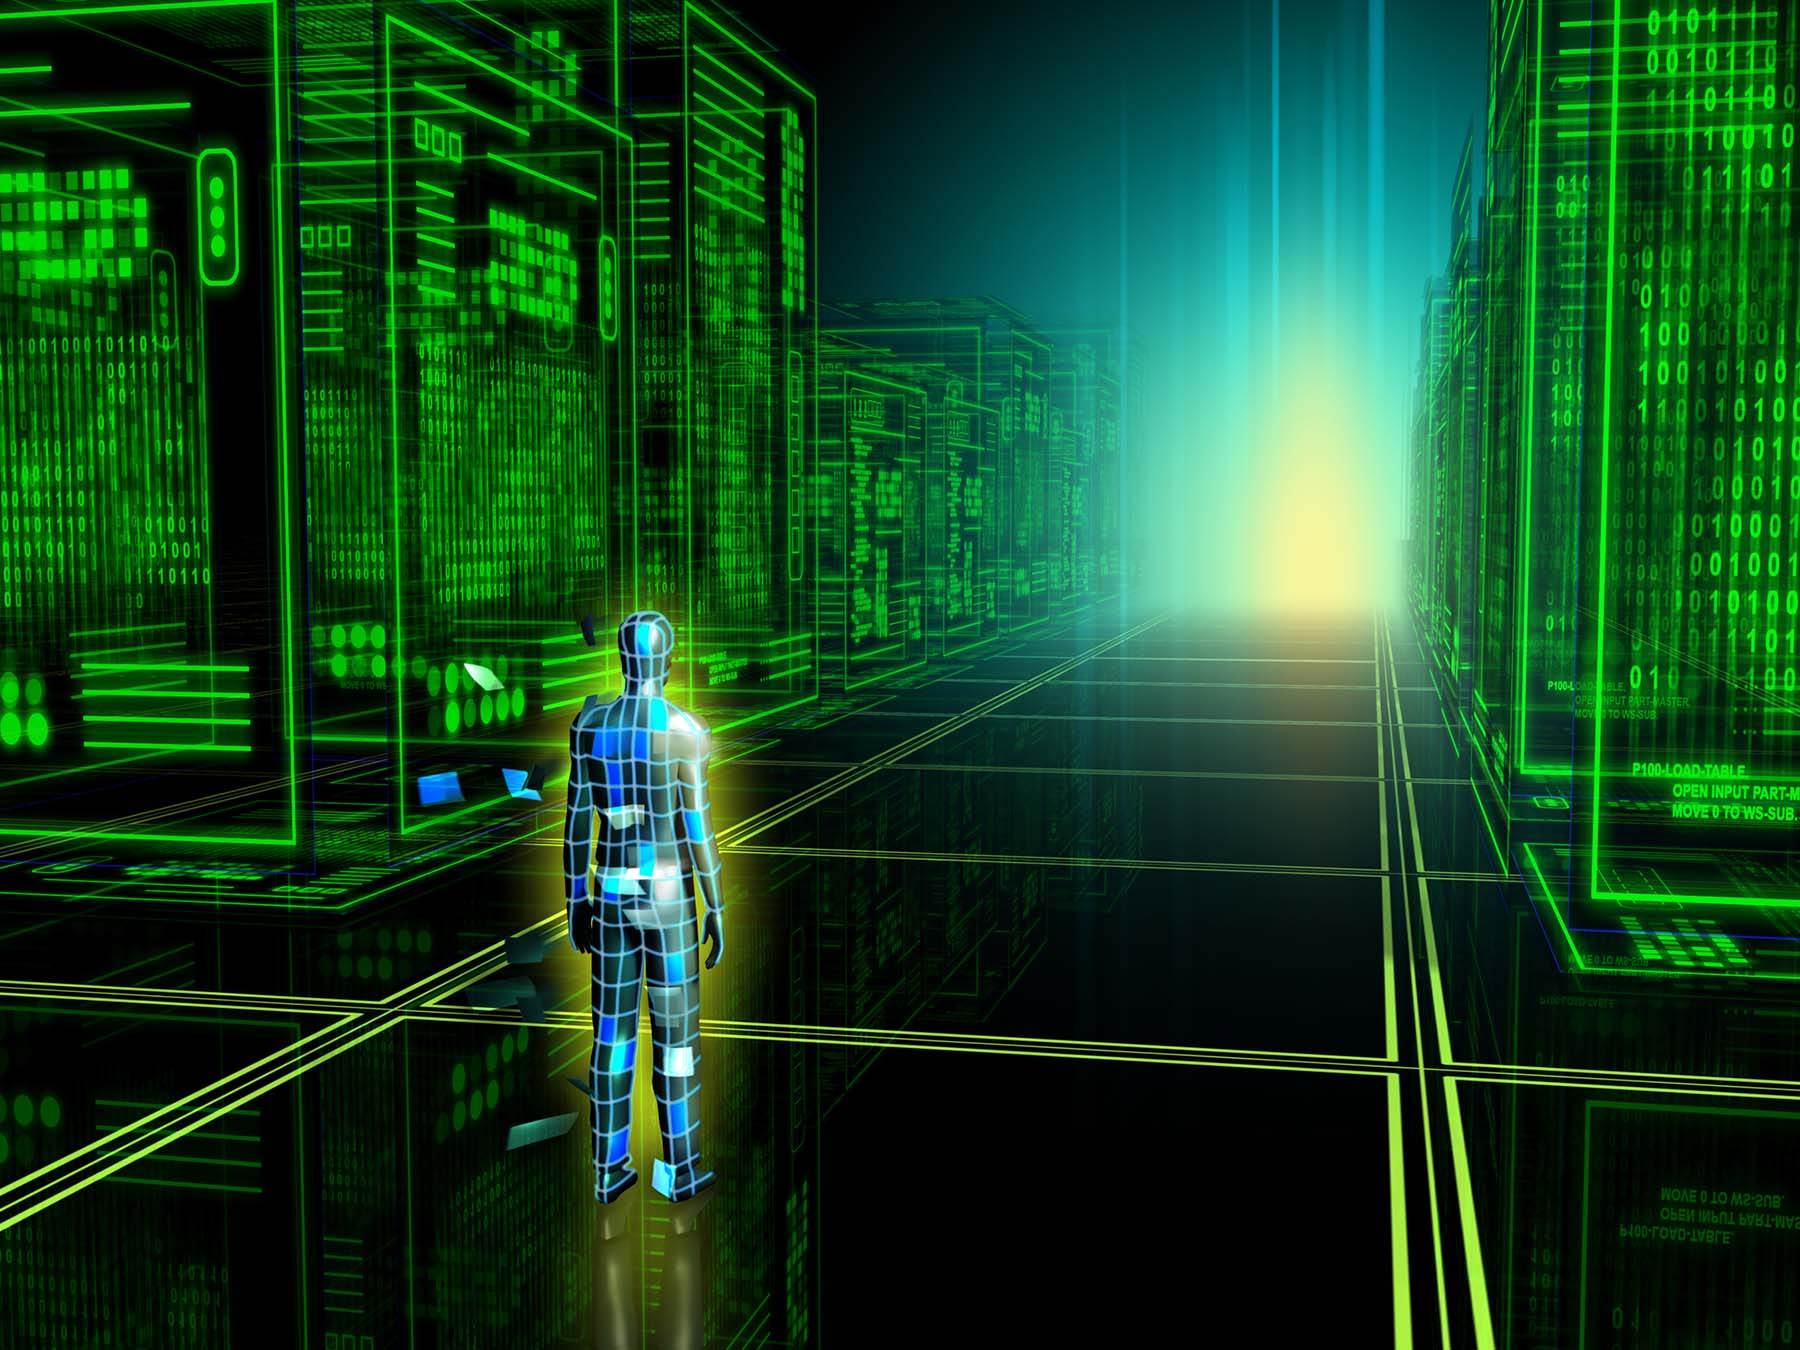 A humanoid inside a matrix full of computers.